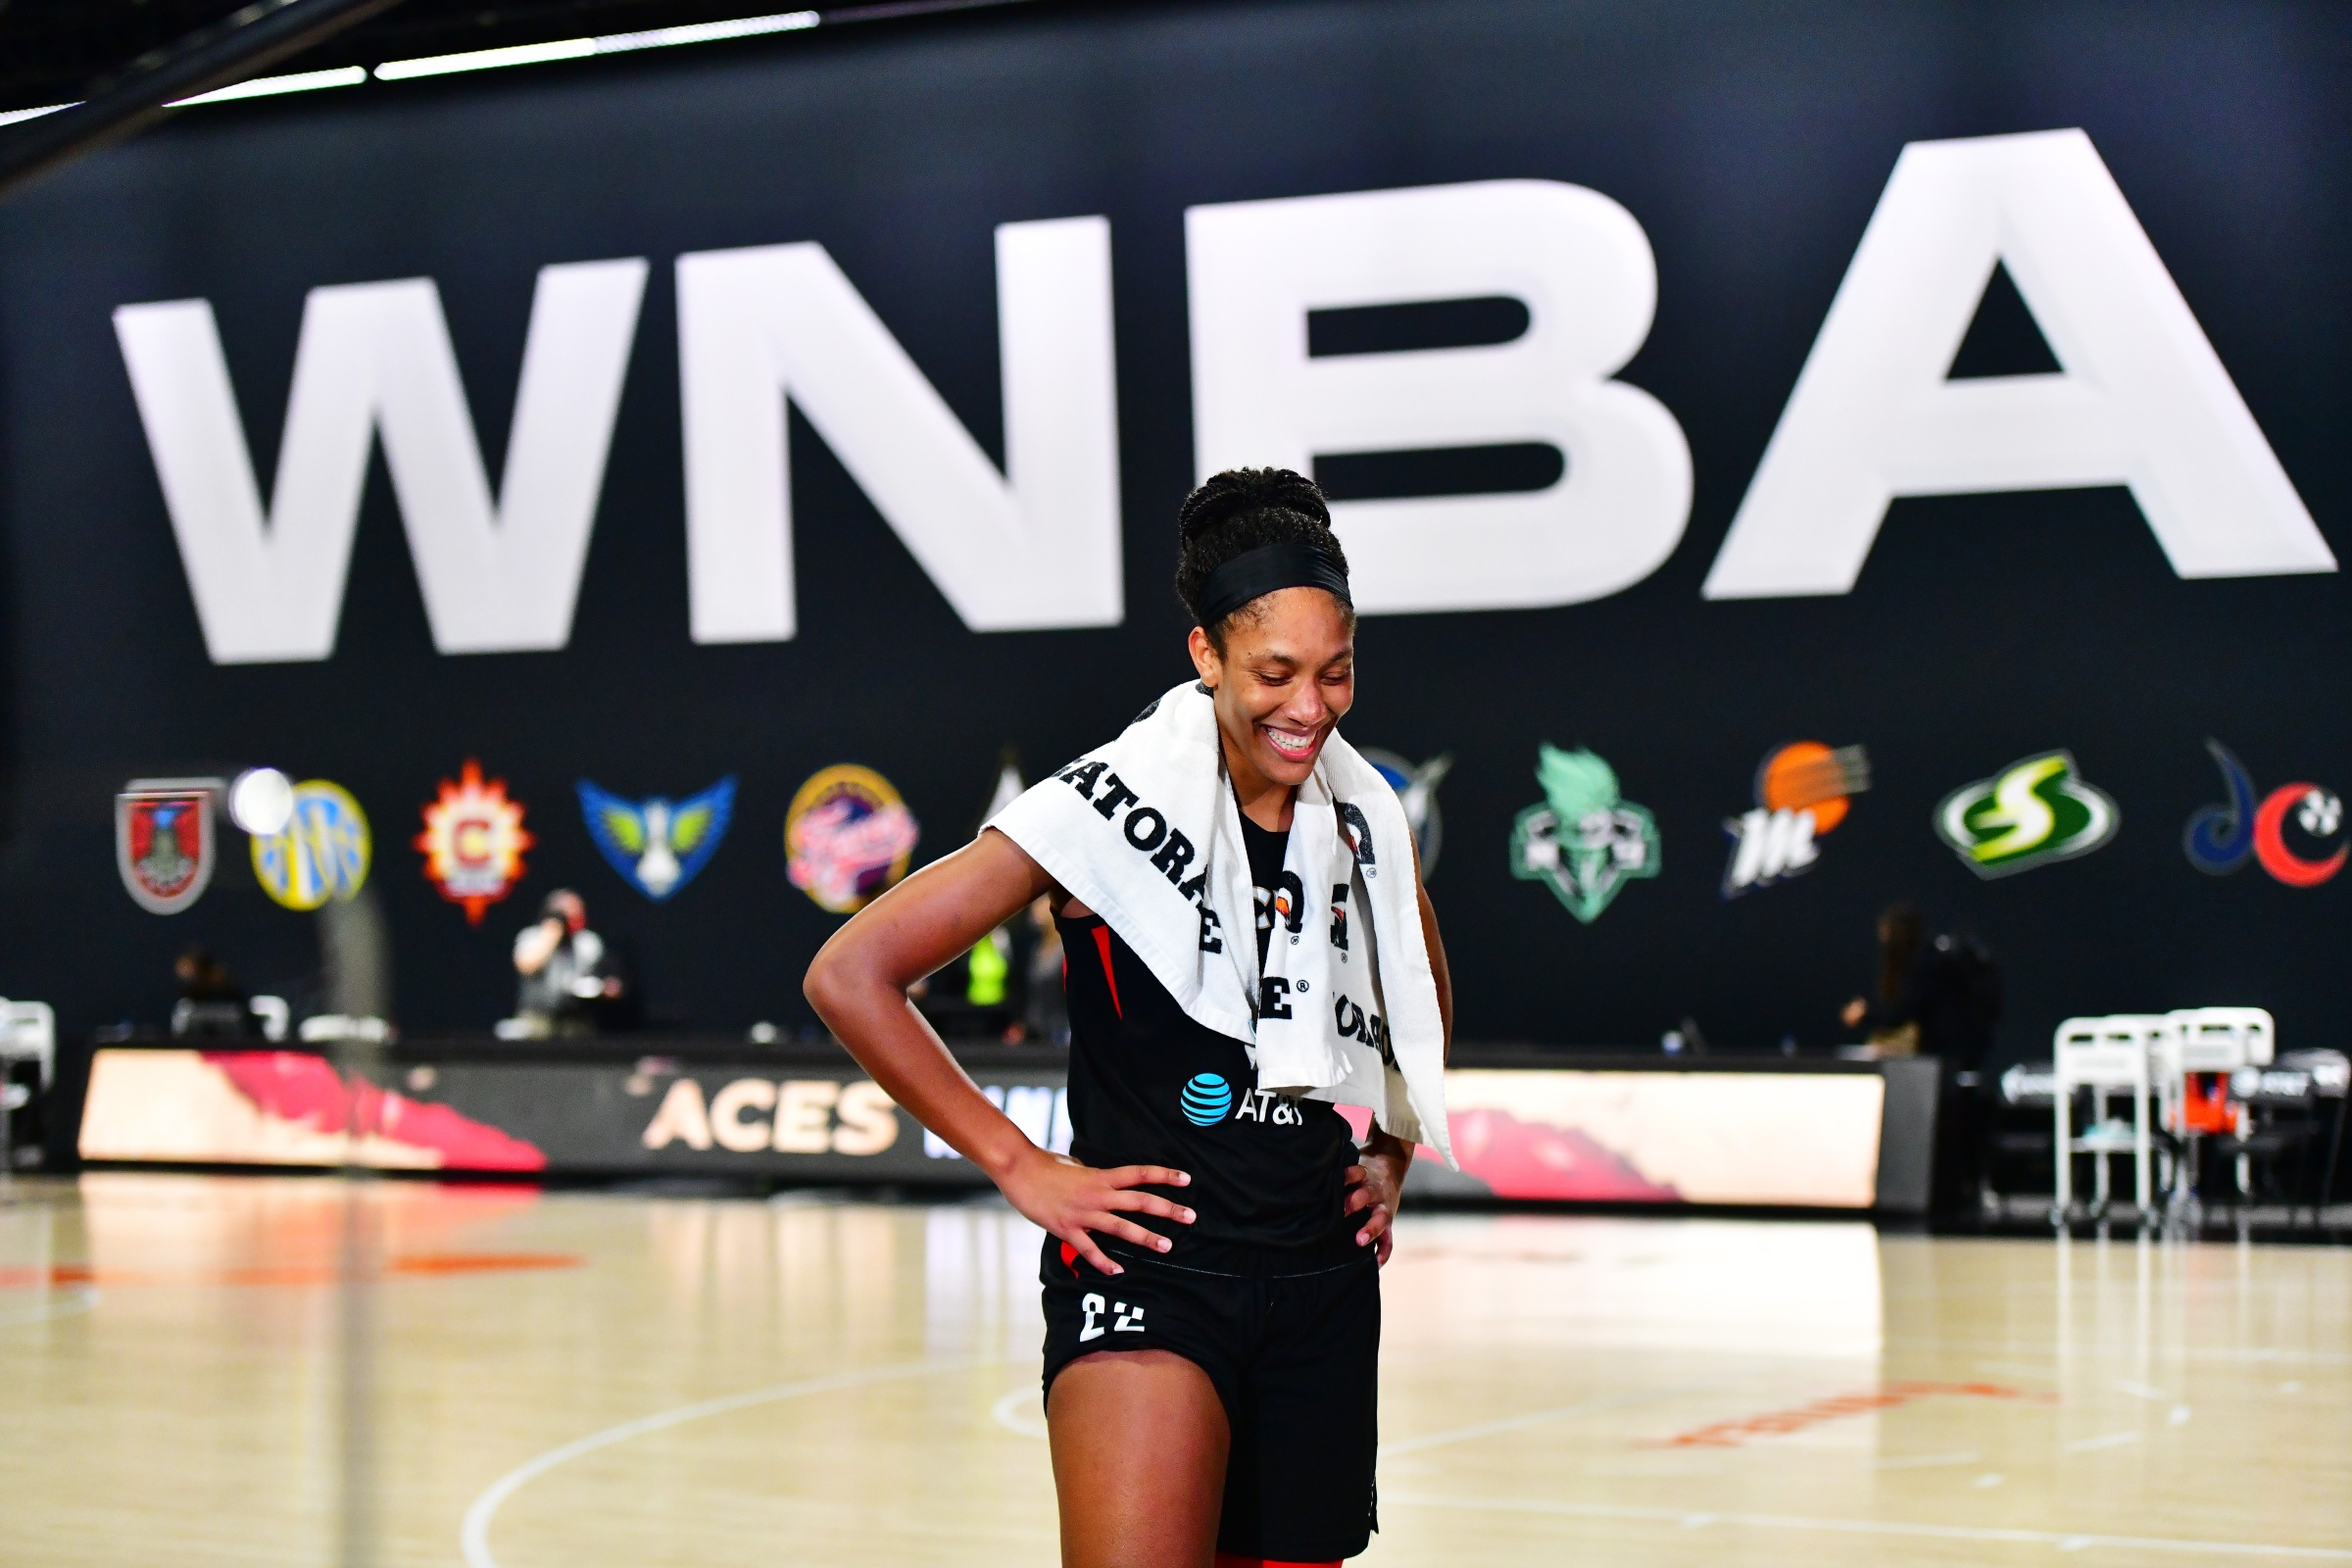 A'ja Wilson #22 of the Las Vegas Aces smiles while getting interviewed after defeating the Connecticut Sun 66-63 to advance to the WNBA finals following Game Five of their Third Round playoff at Feld Entertainment Center on September 29, 2020 in Palmetto, Florida.